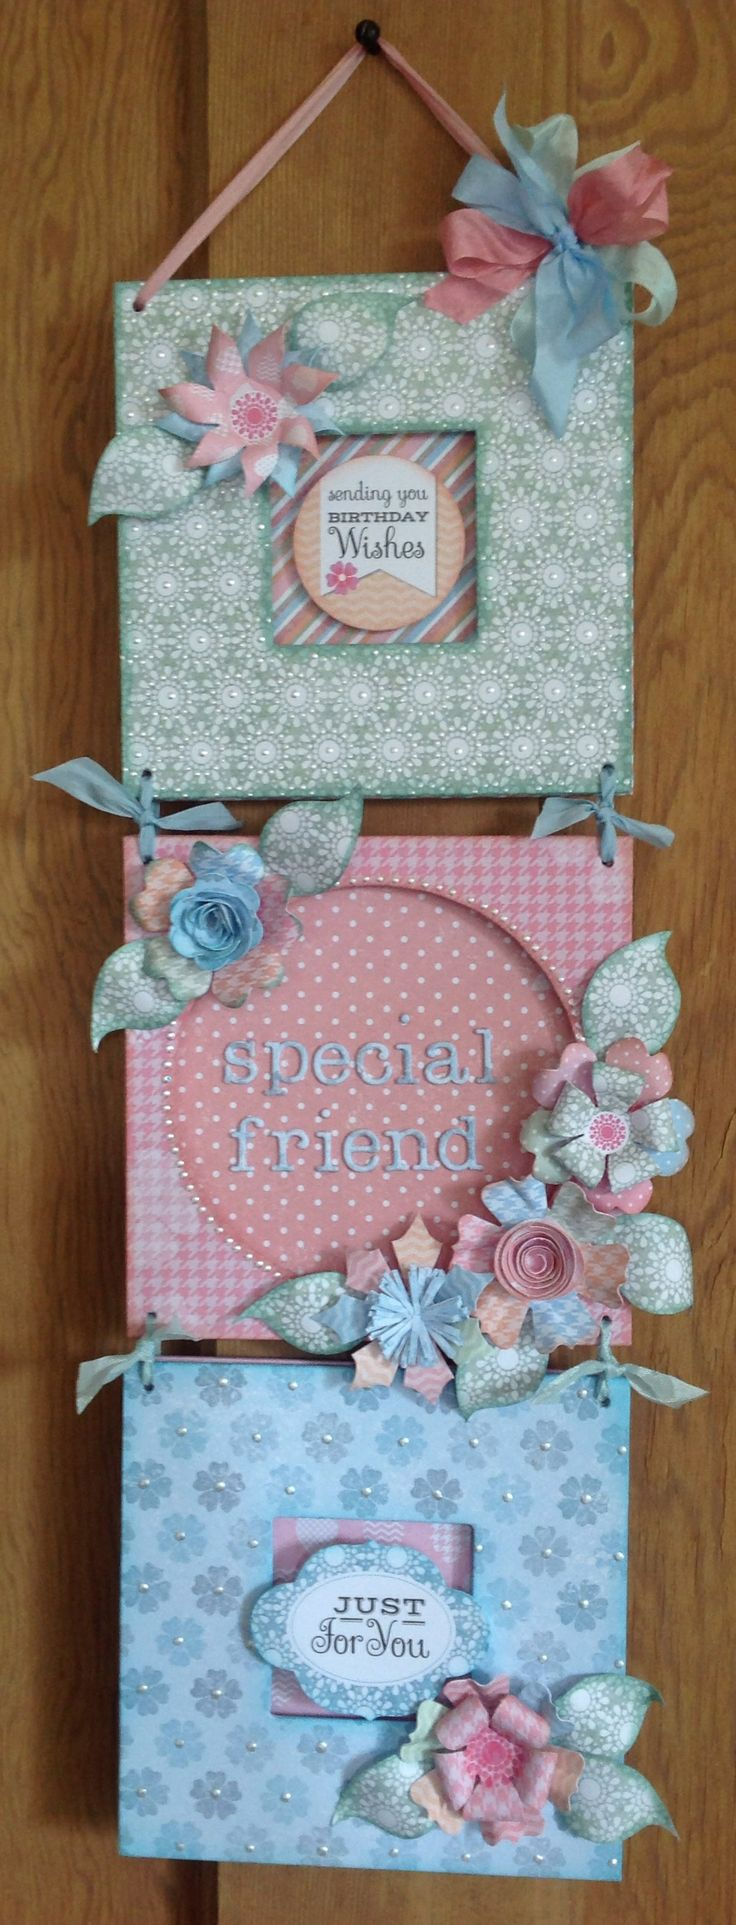 Wall Hanging designed by Julie Hickey using 50 Quick and Easy Card kit.